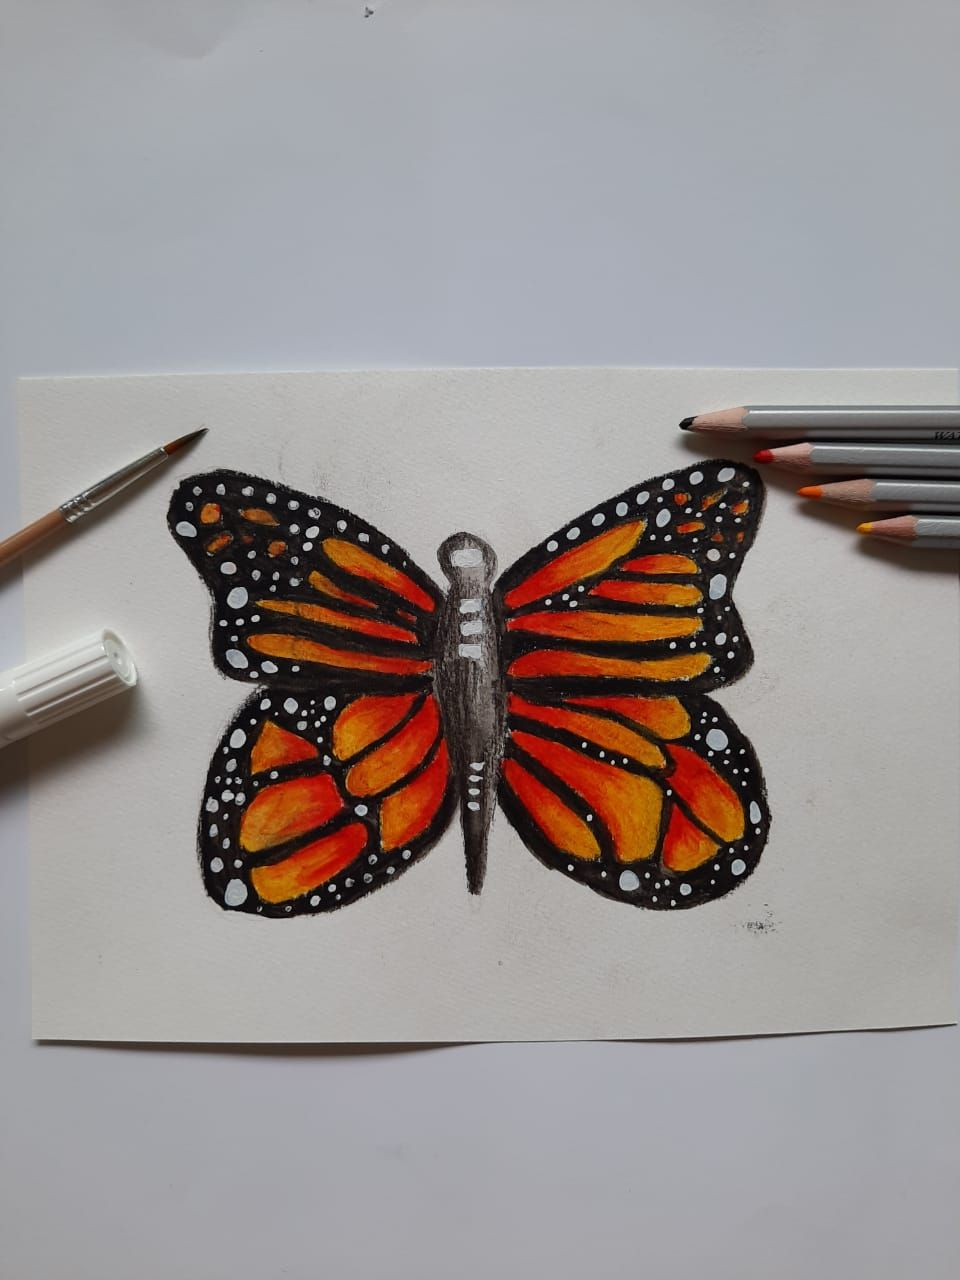 Butterfly - image 2 - student project